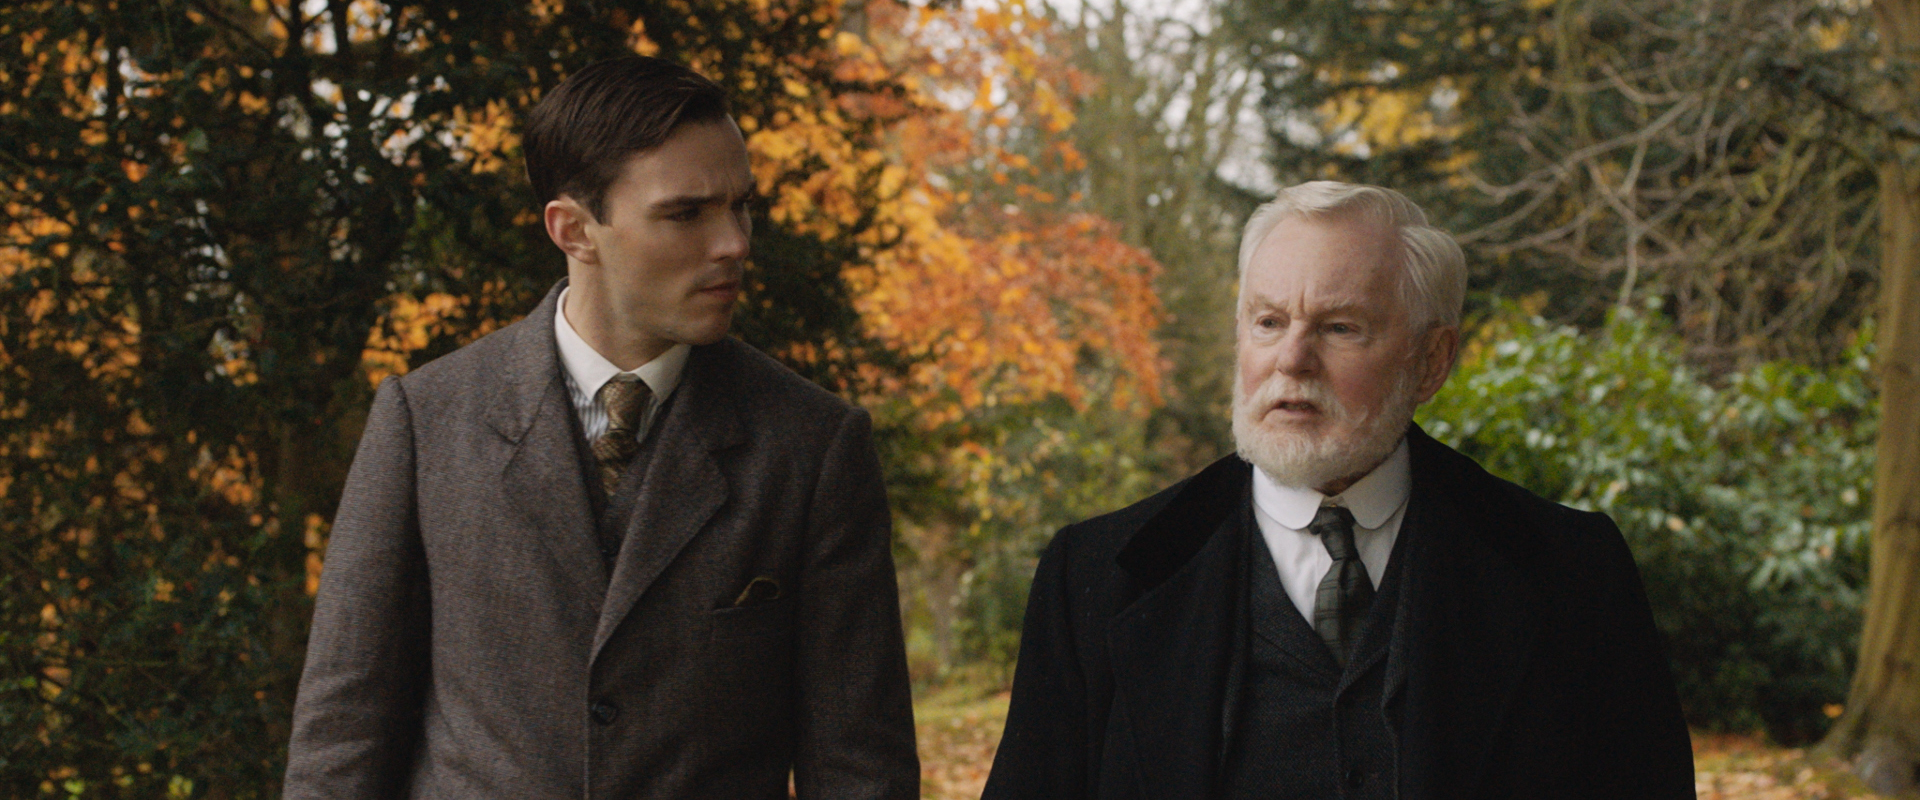 The young Tolkien (Nicholas Hoult) receives sage advice from an inspirational professor (Derek Jacobi)